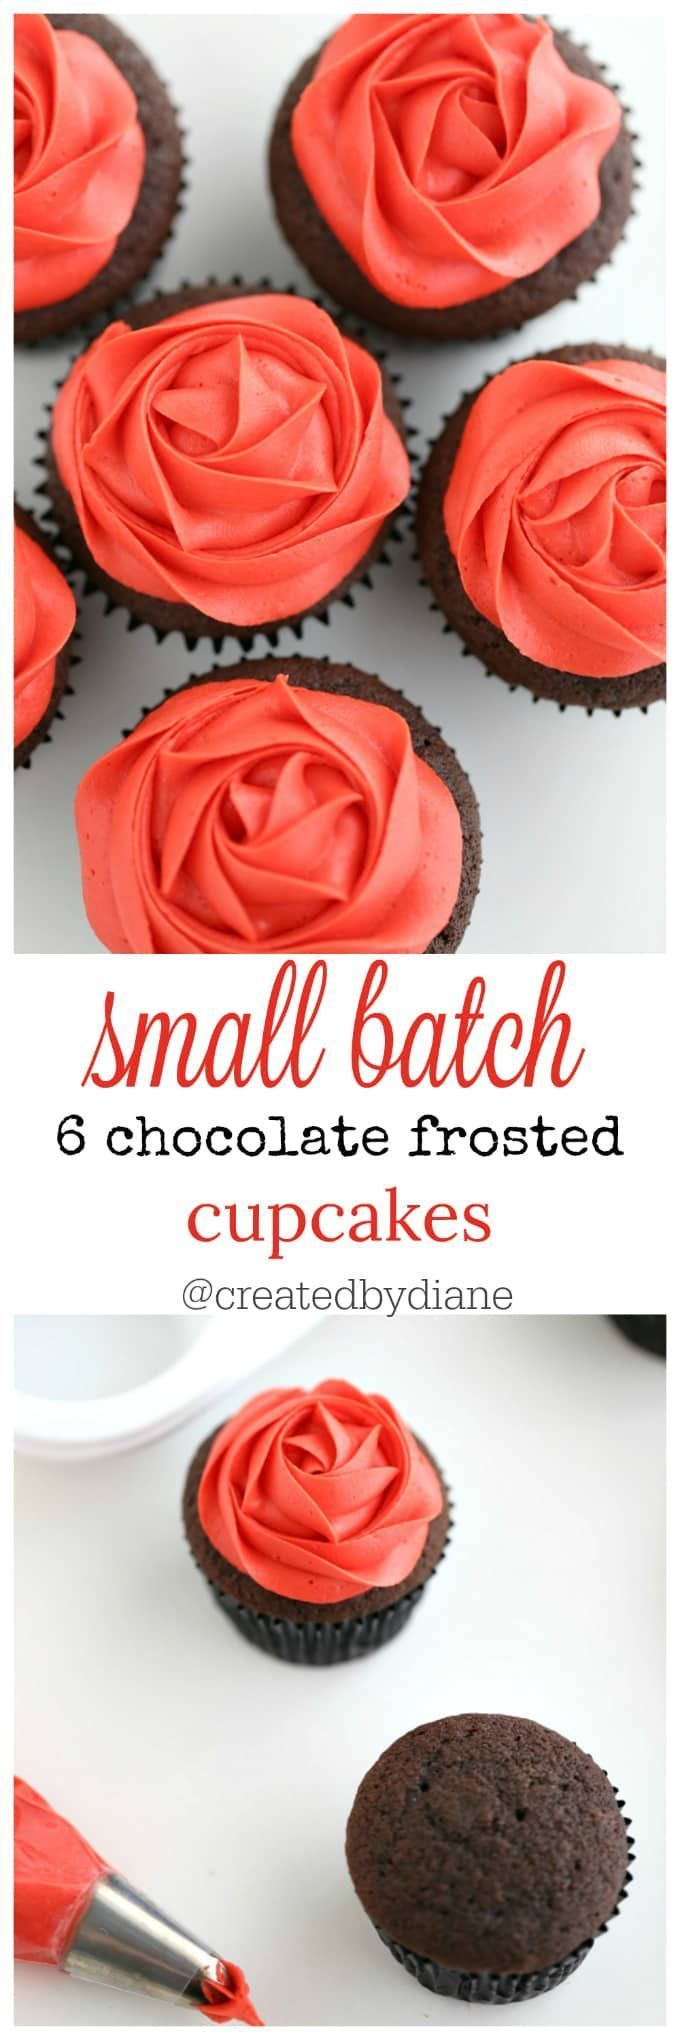 small batch 6 chocolate frosted cupcakes with silky smooth buttercream frosting  @createdbydiane